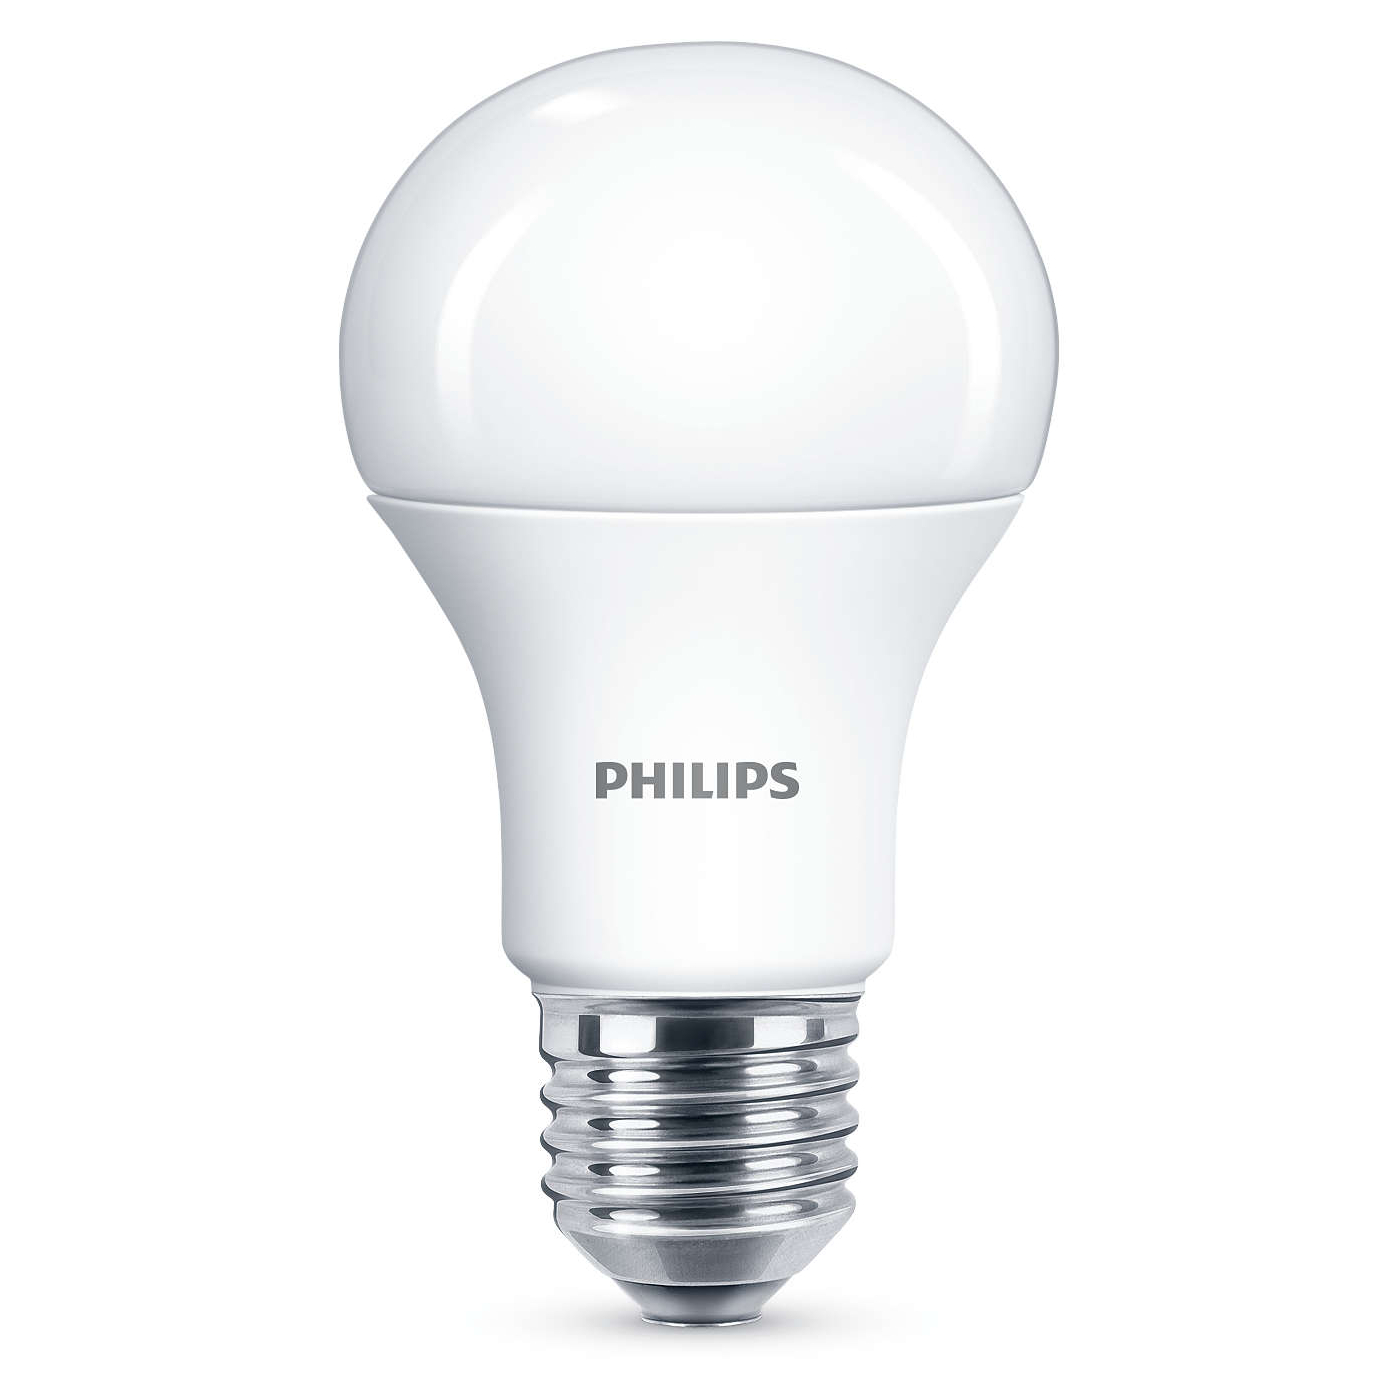 Led E27 Philips 8718696510162 E27 Edison Screw 11 W Led Light Bulb